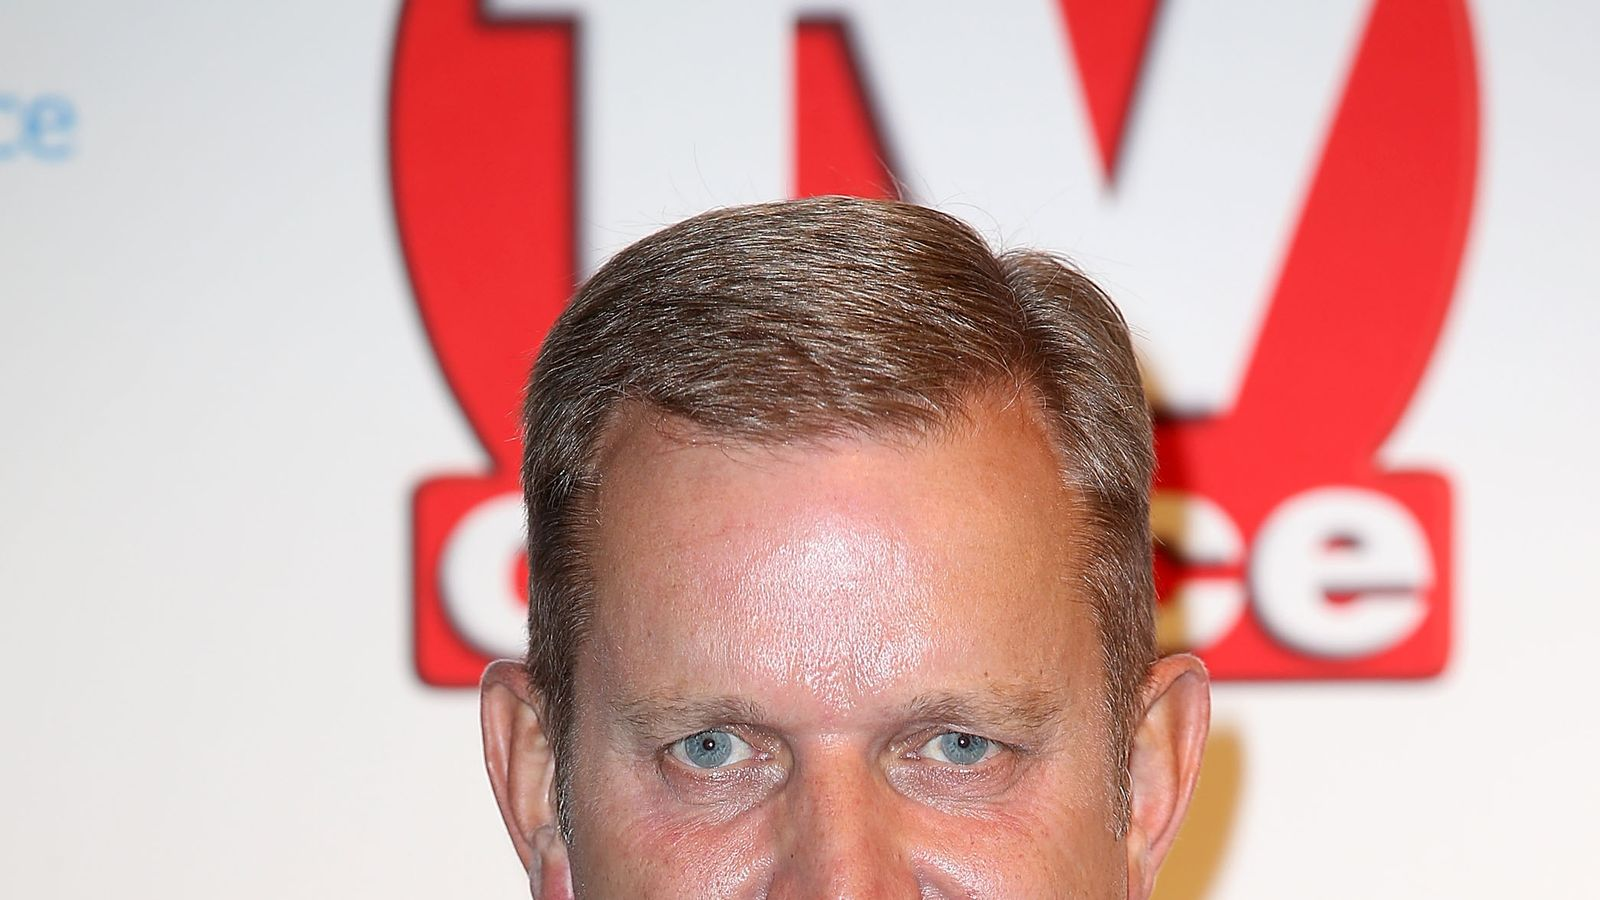 Jeremy Kyle comeback: ITV presenter will be 'back soon to have his say'